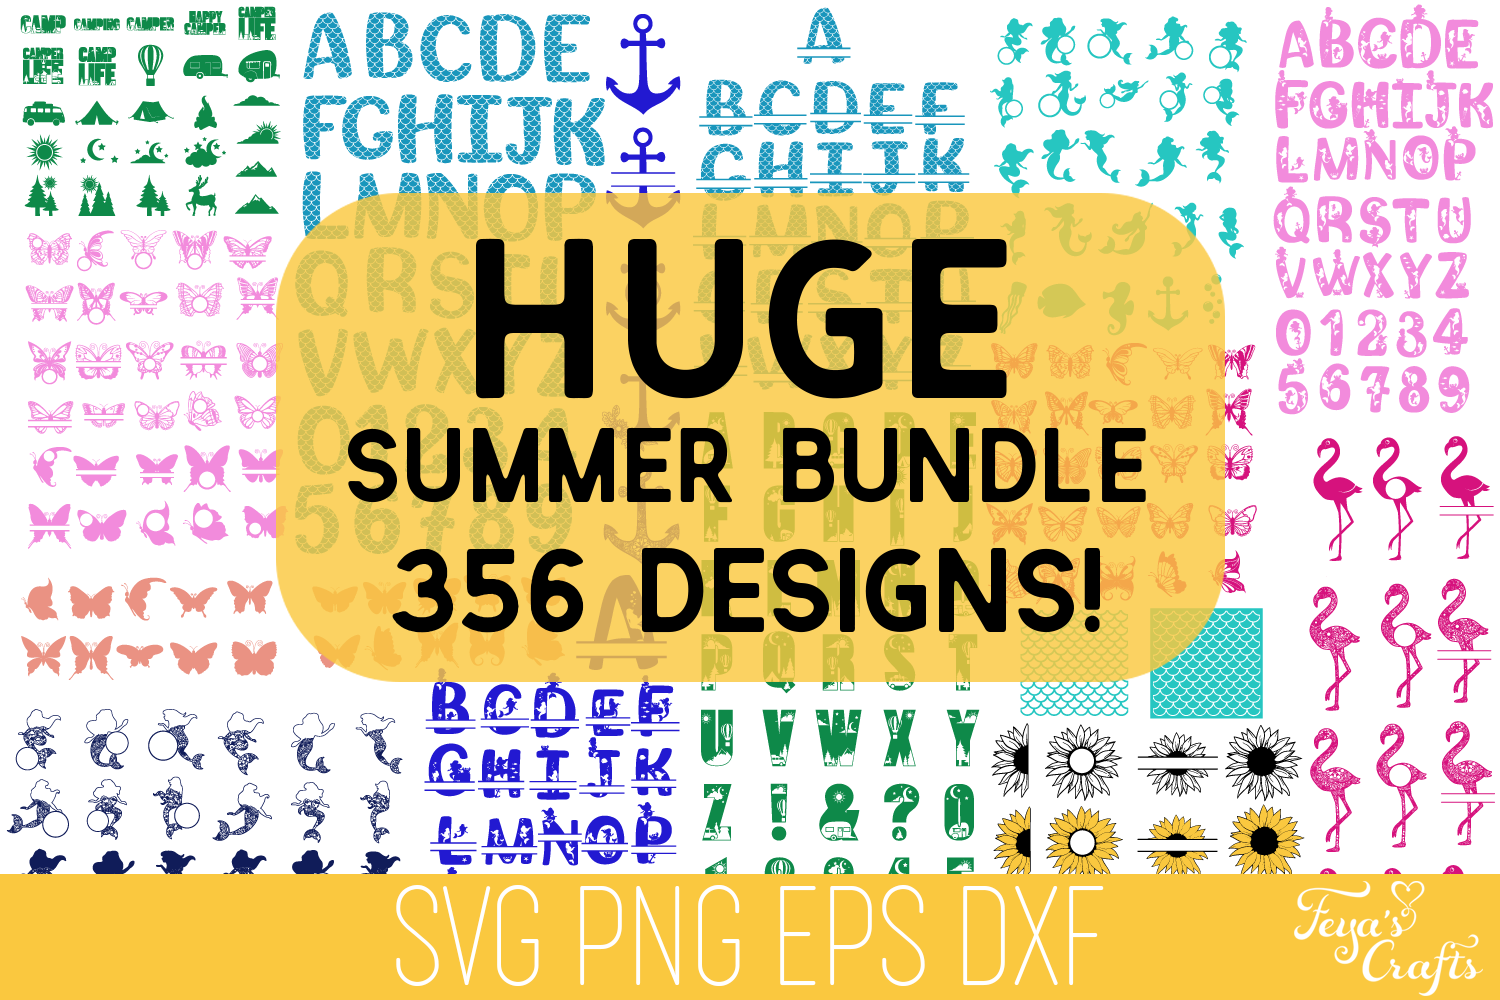 Download Free Summer Mermaid Bundle Graphic By Anastasia Feya Creative Fabrica for Cricut Explore, Silhouette and other cutting machines.